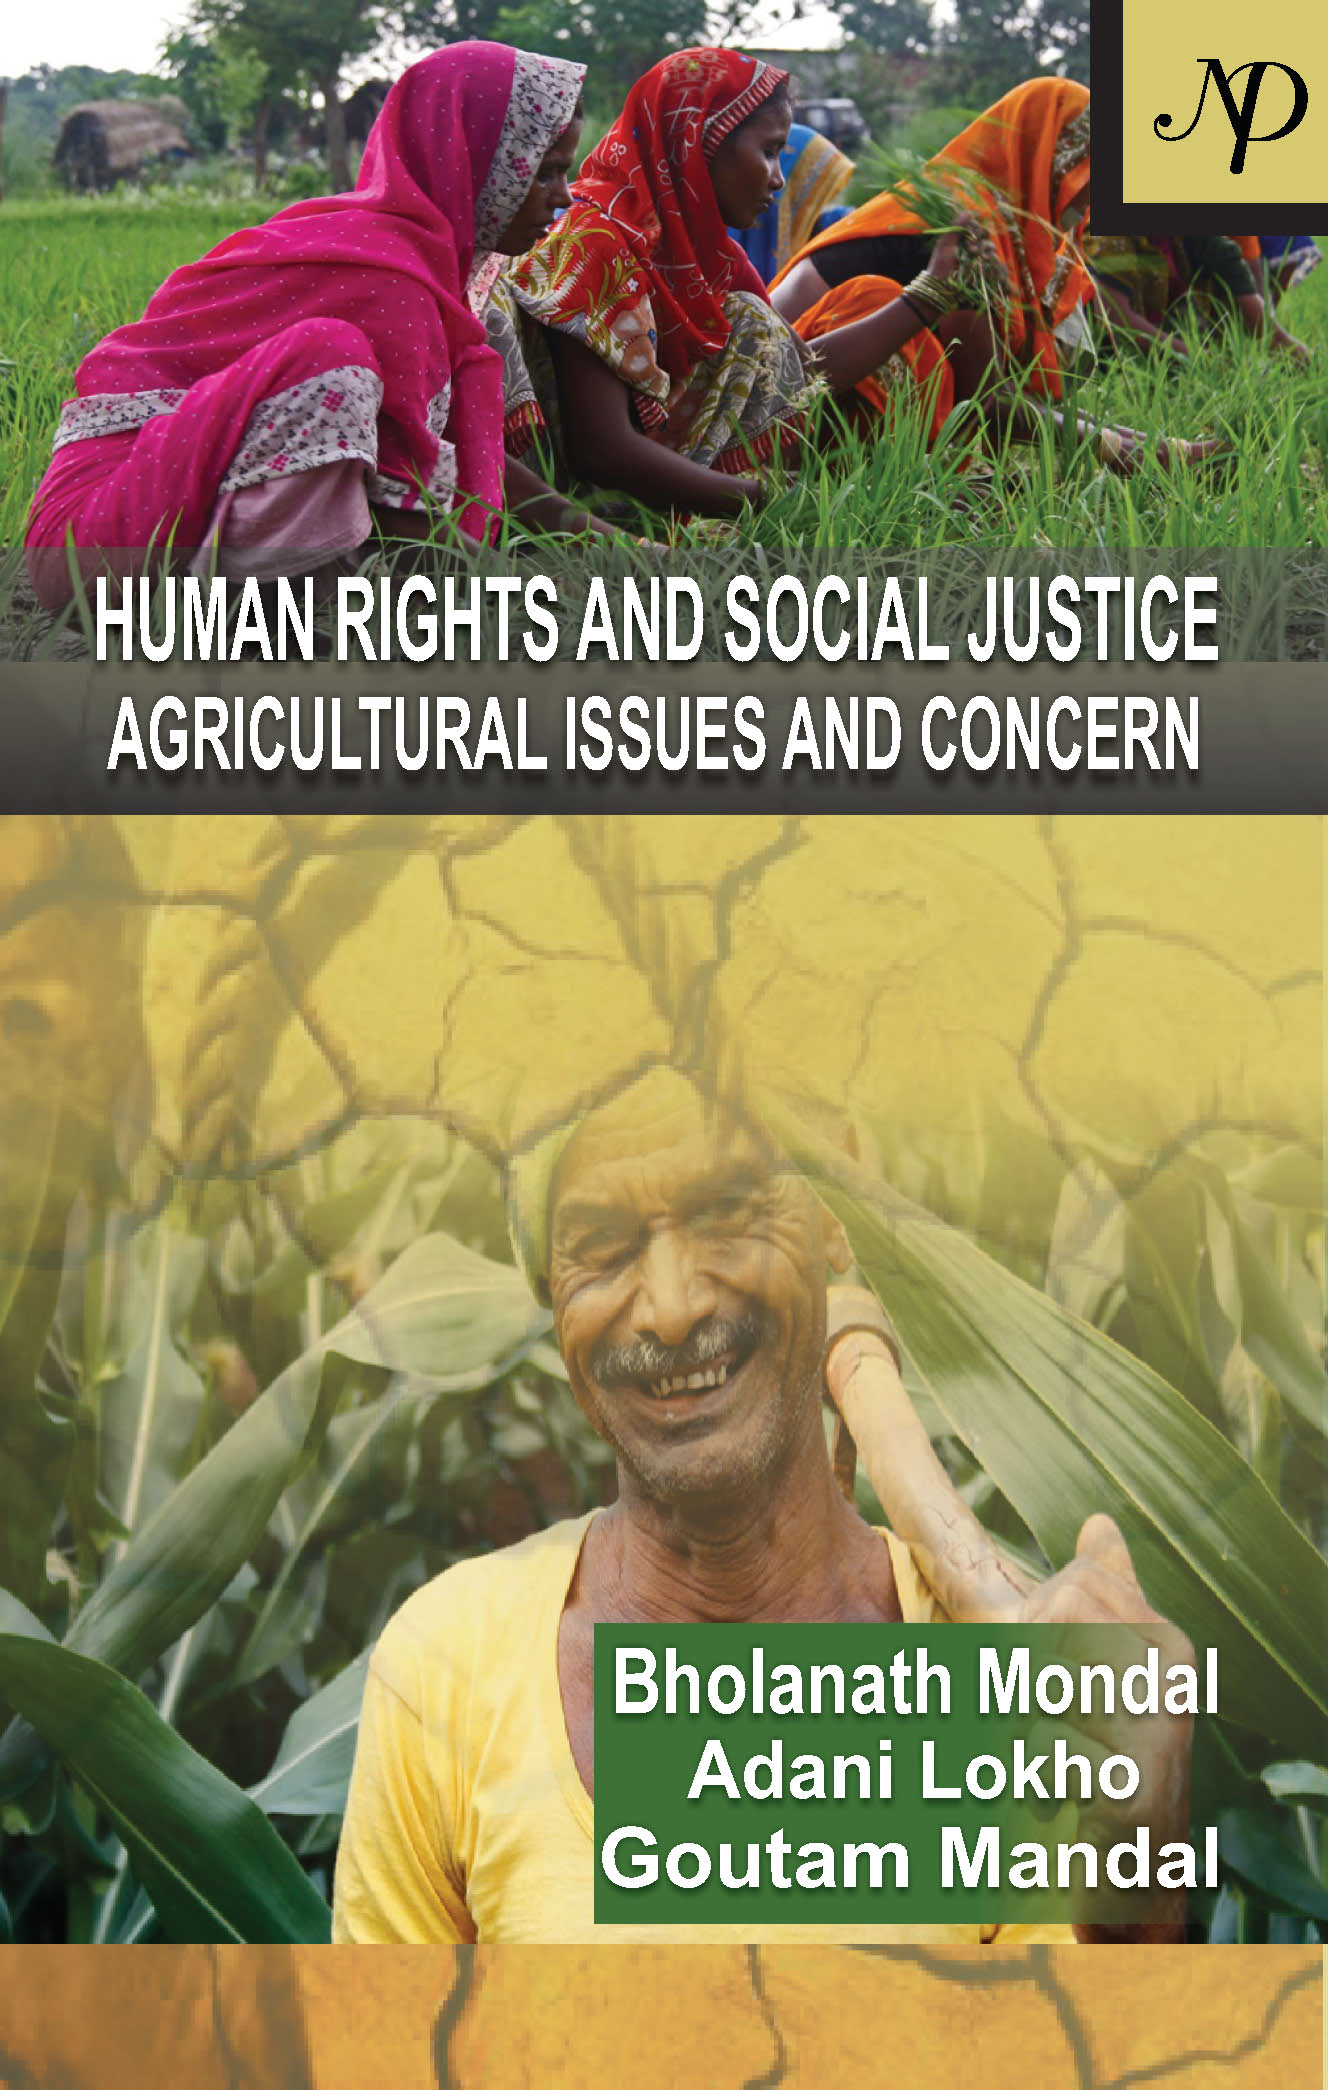 COVER HUMAN RIGHTS AND SOCIAL JUSTICE AGRICULTURAL ISSUES AND CONCERN.jpg